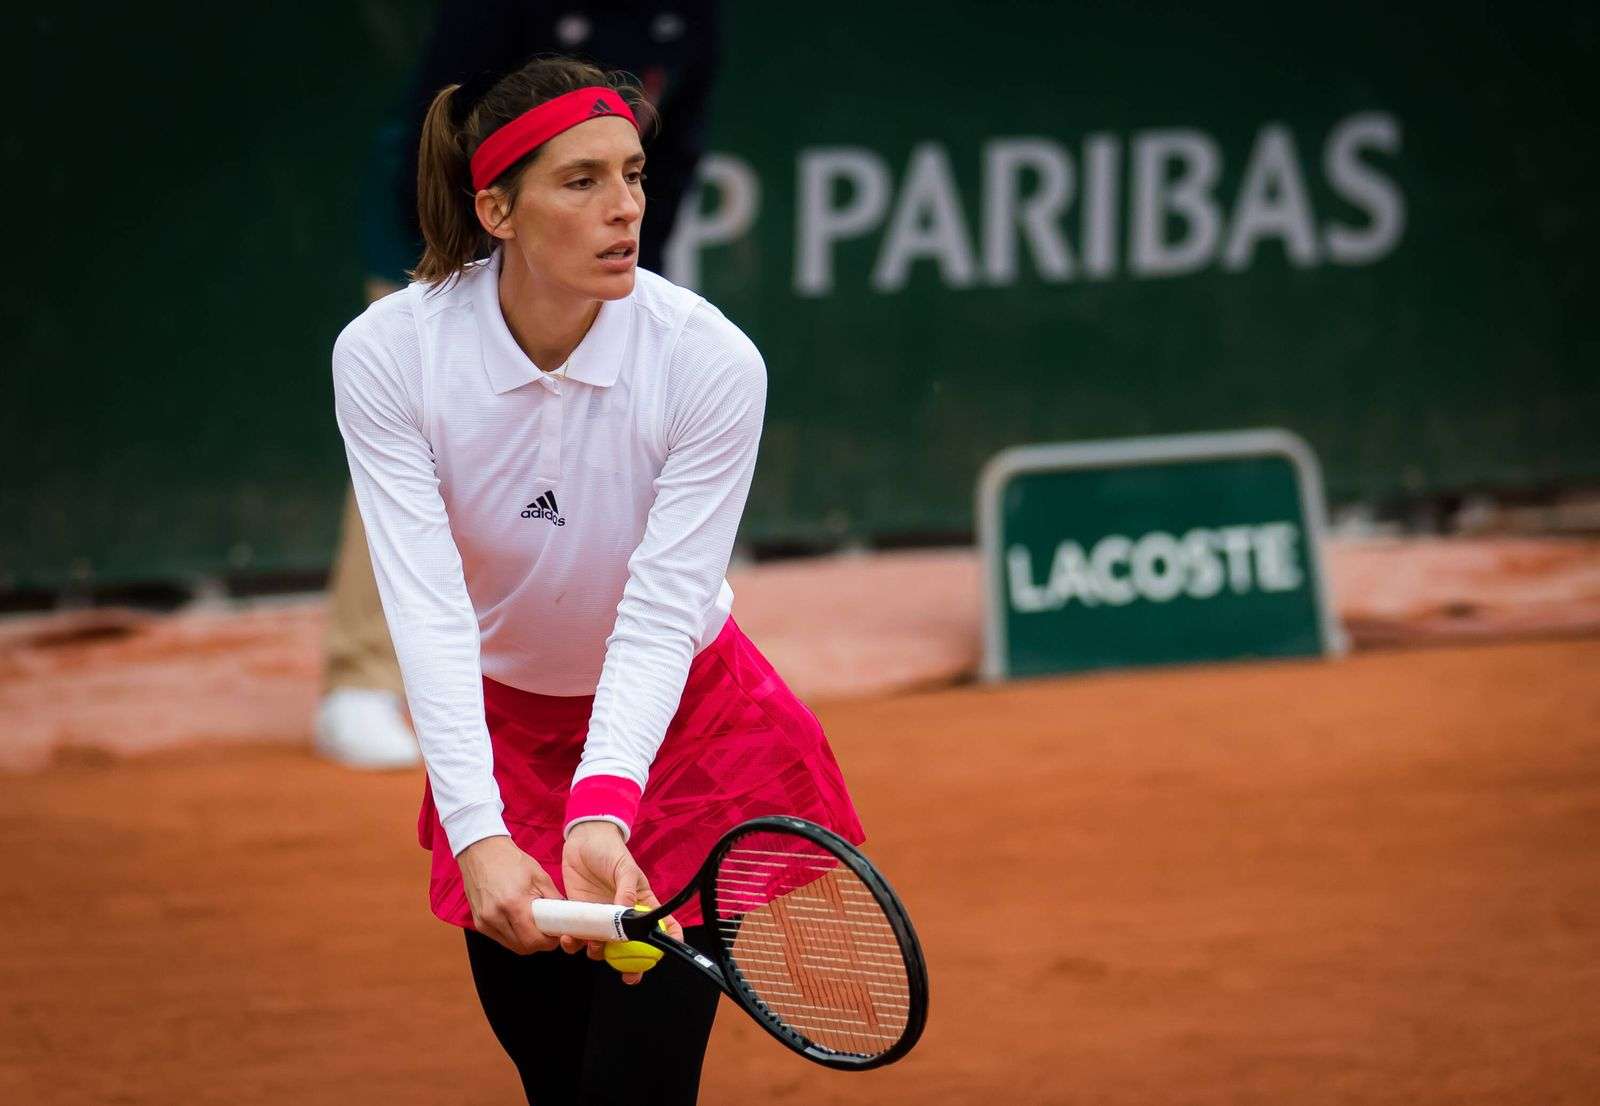 September 28, 2020, Paris, FRANCE: Andrea Petkovic of Germany in action during the first round at the 2020 Roland Garro